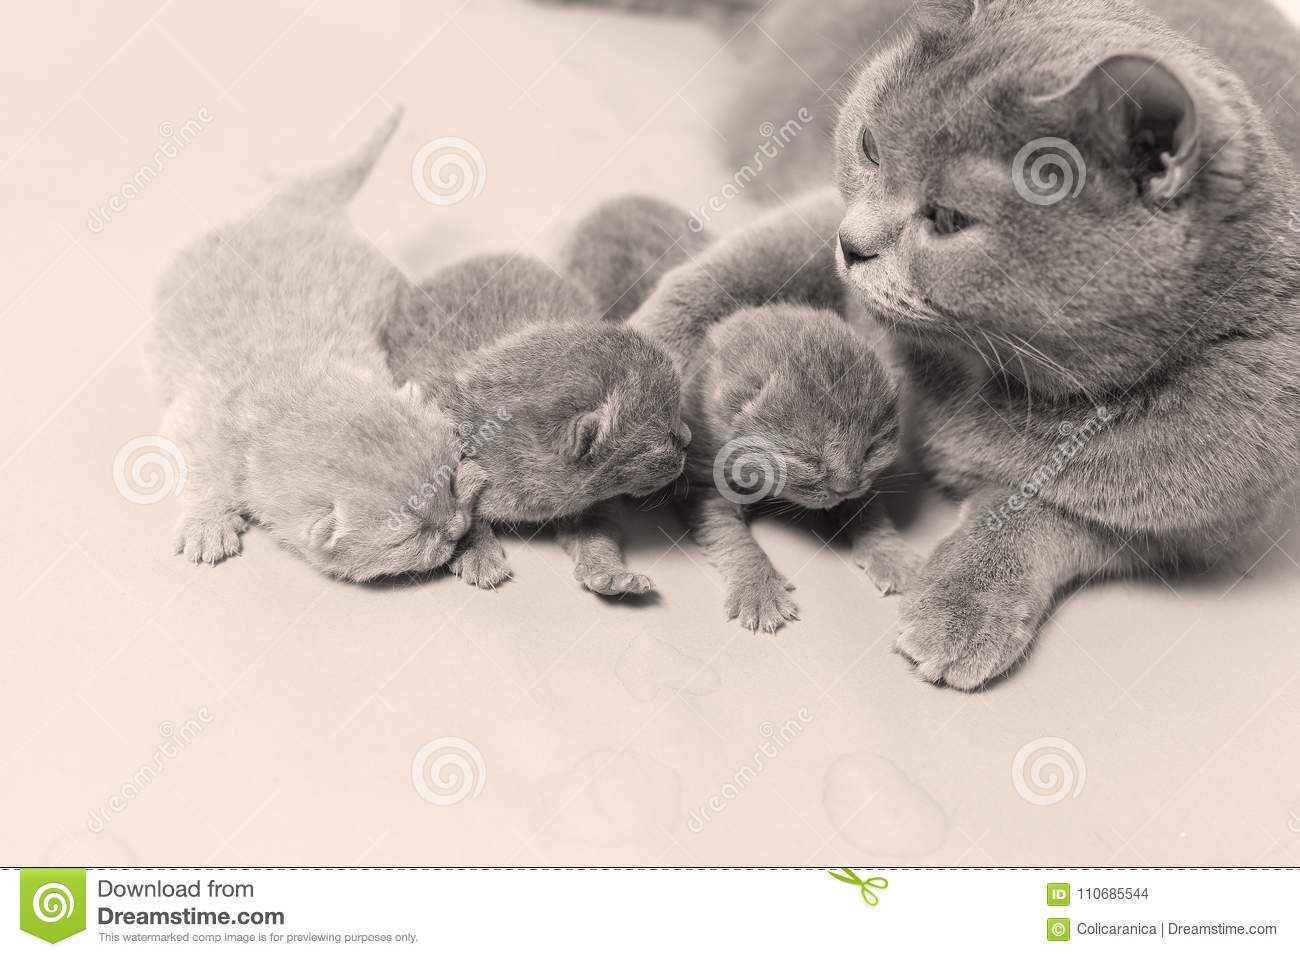 Cat takes care of kittens